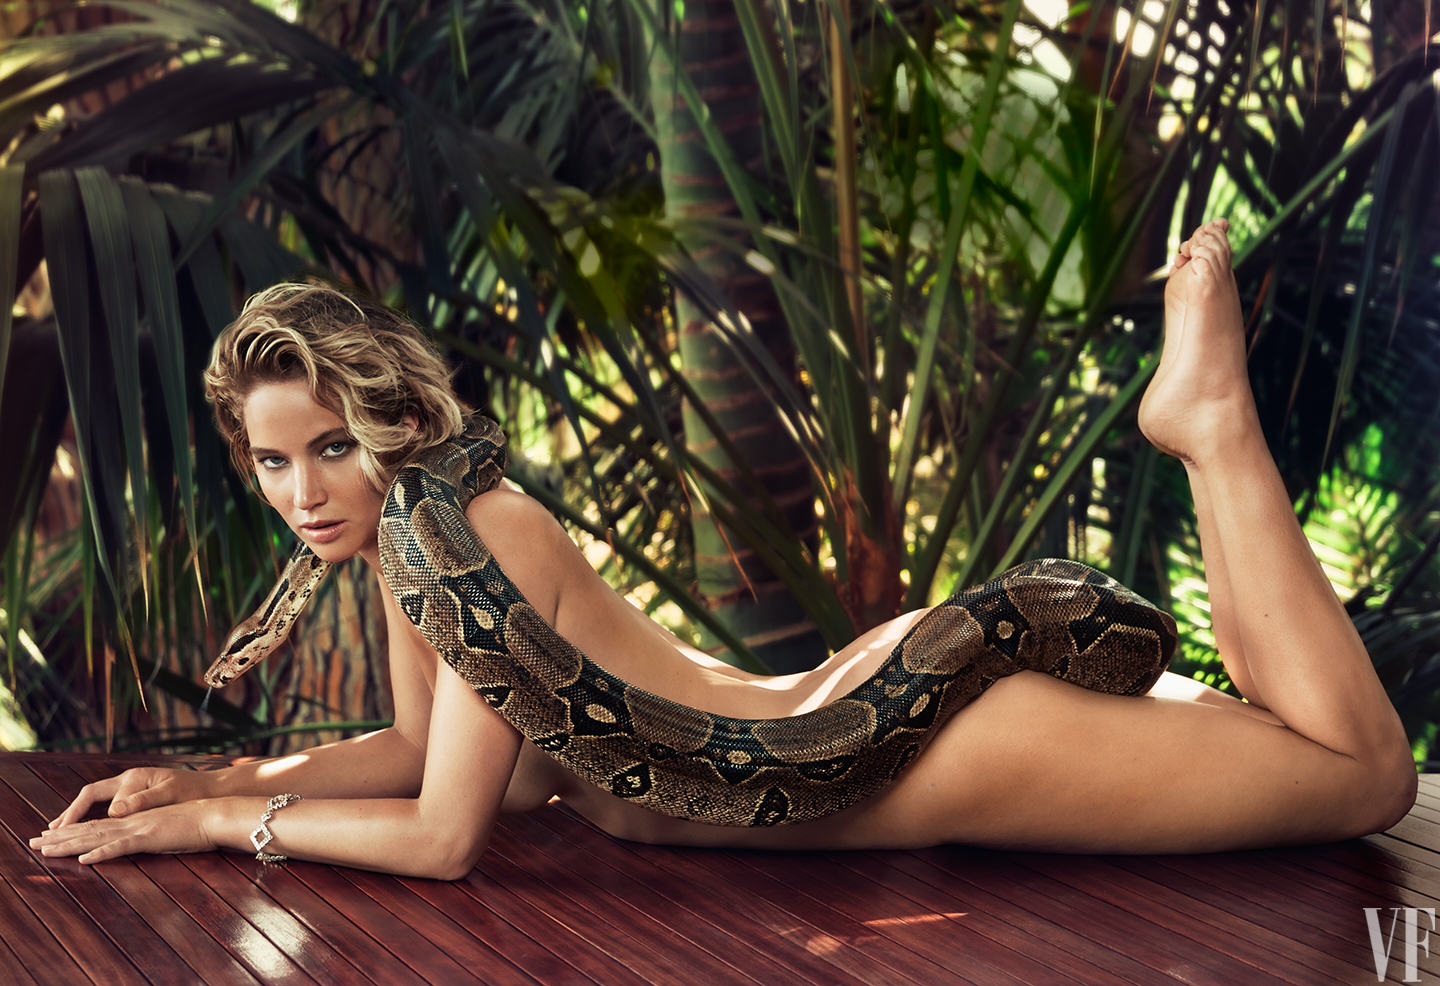 Jennifer Lawrence Goes Nude Again, This Time With A Snake Jennifer Lawrence Snake